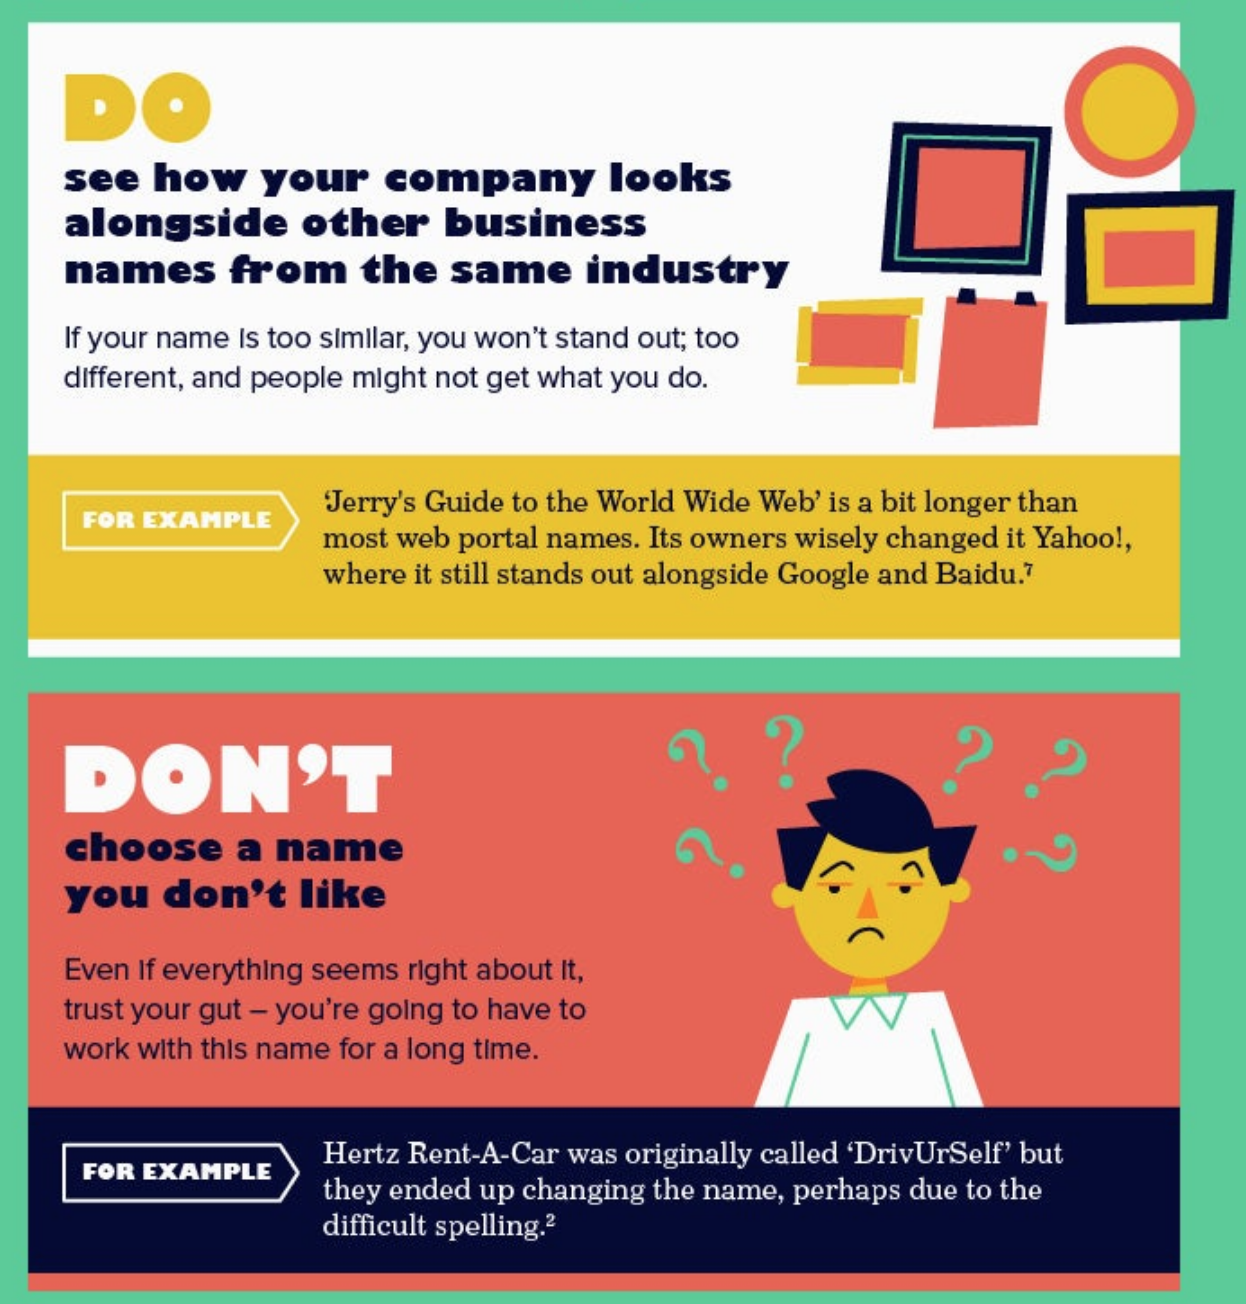 See how your name looks alongside other names from the industry. Don't choose a name you don't like.